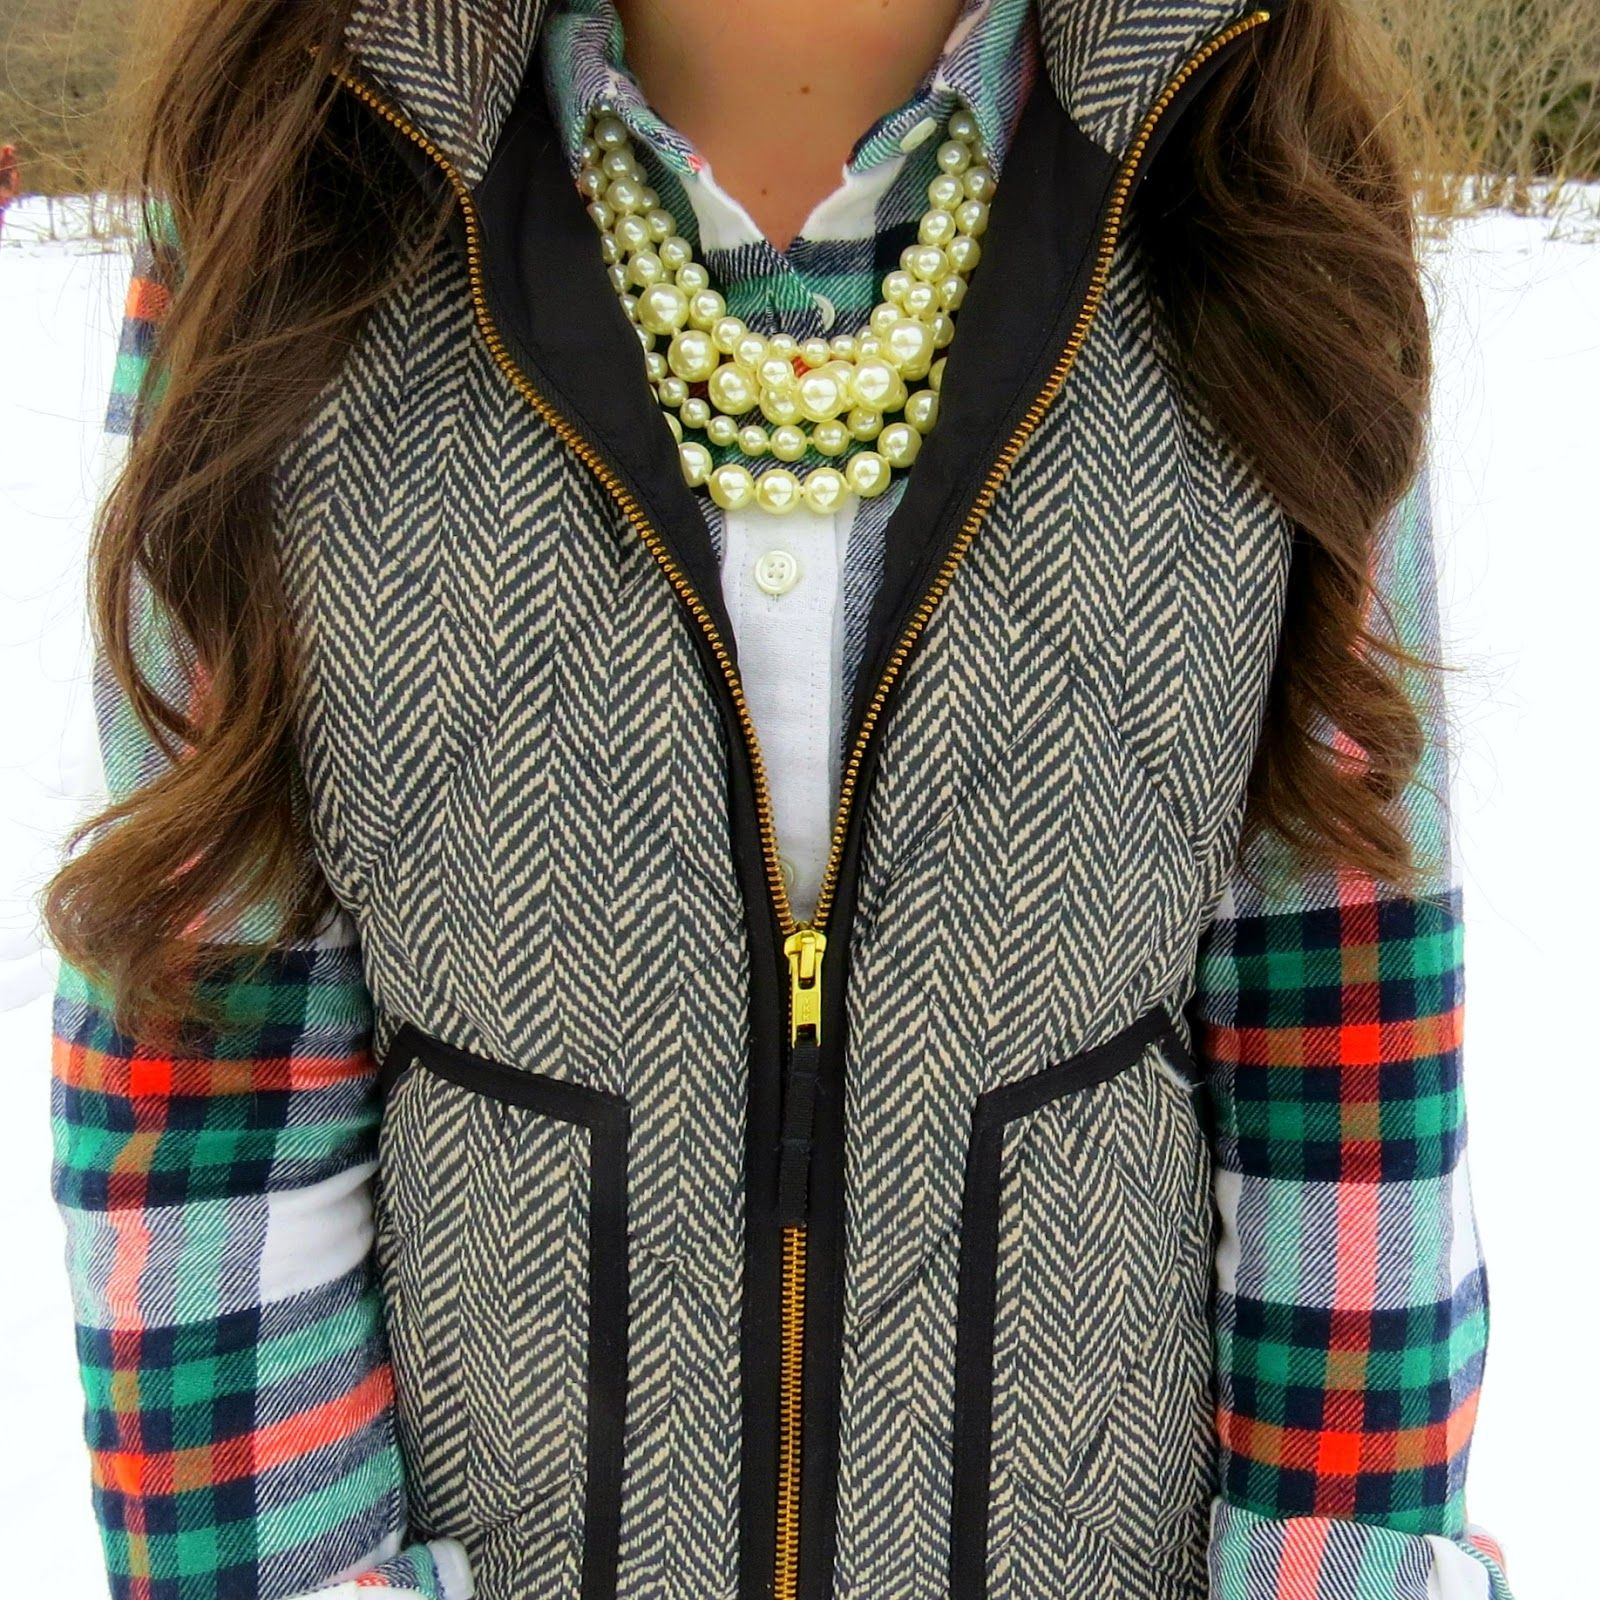 Love the flannel/vest/pearl combination! The different sizes of pearls makes it a really unique look